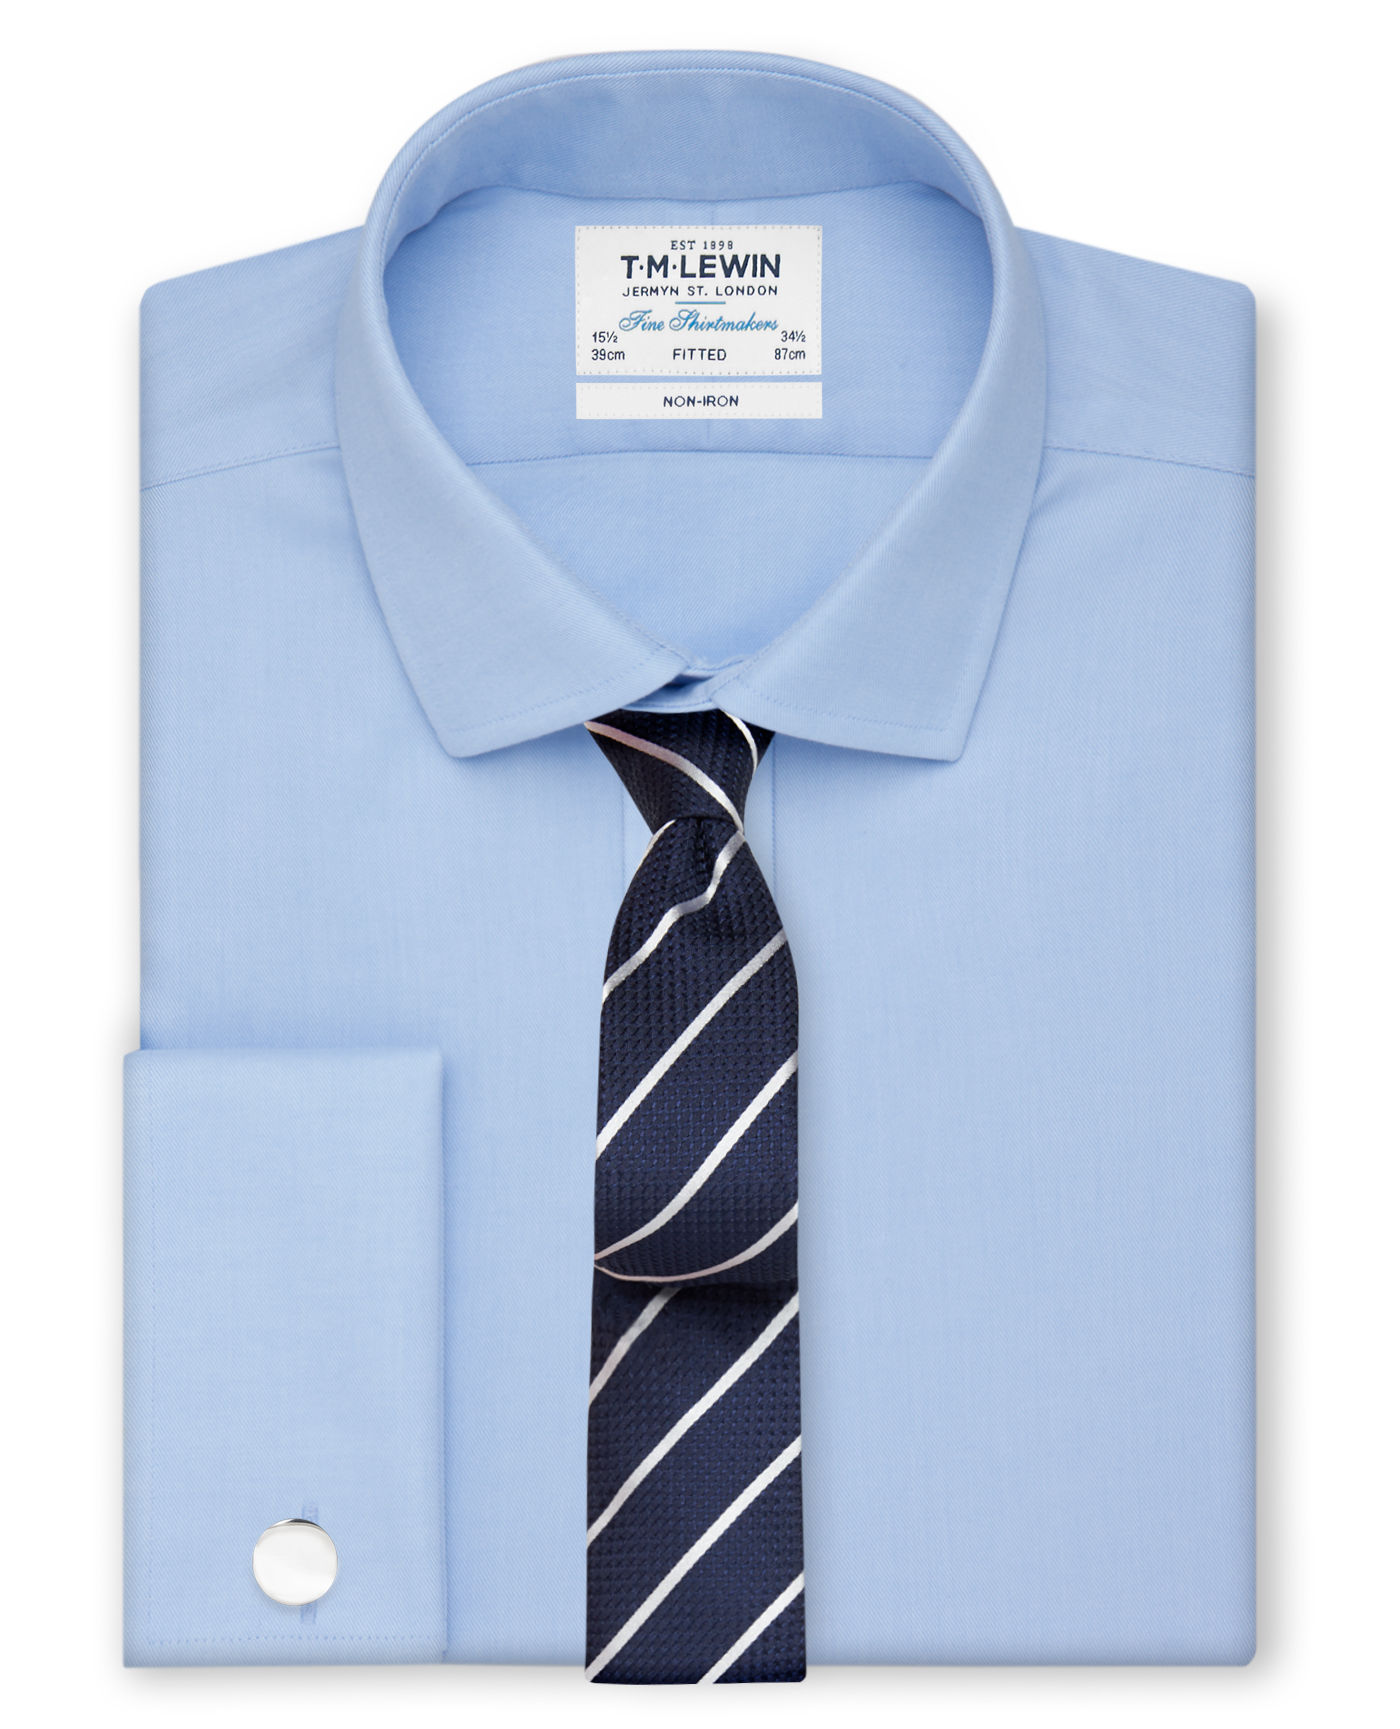 T.M.Lewin Non-Iron Sky Blue Twill Fitted Shirt